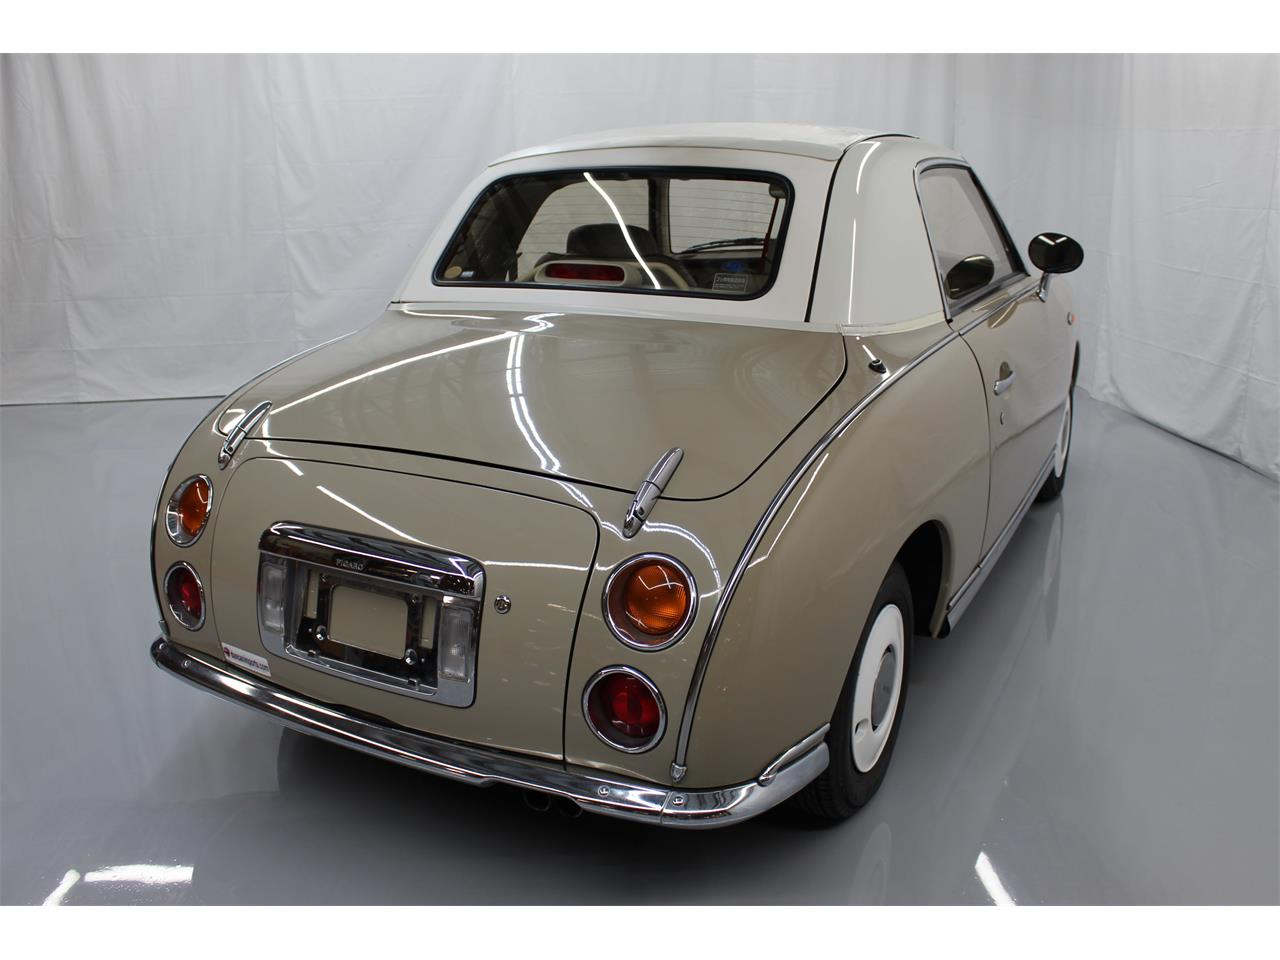 1991 Nissan Figaro for sale in Christiansburg, VA – photo 10